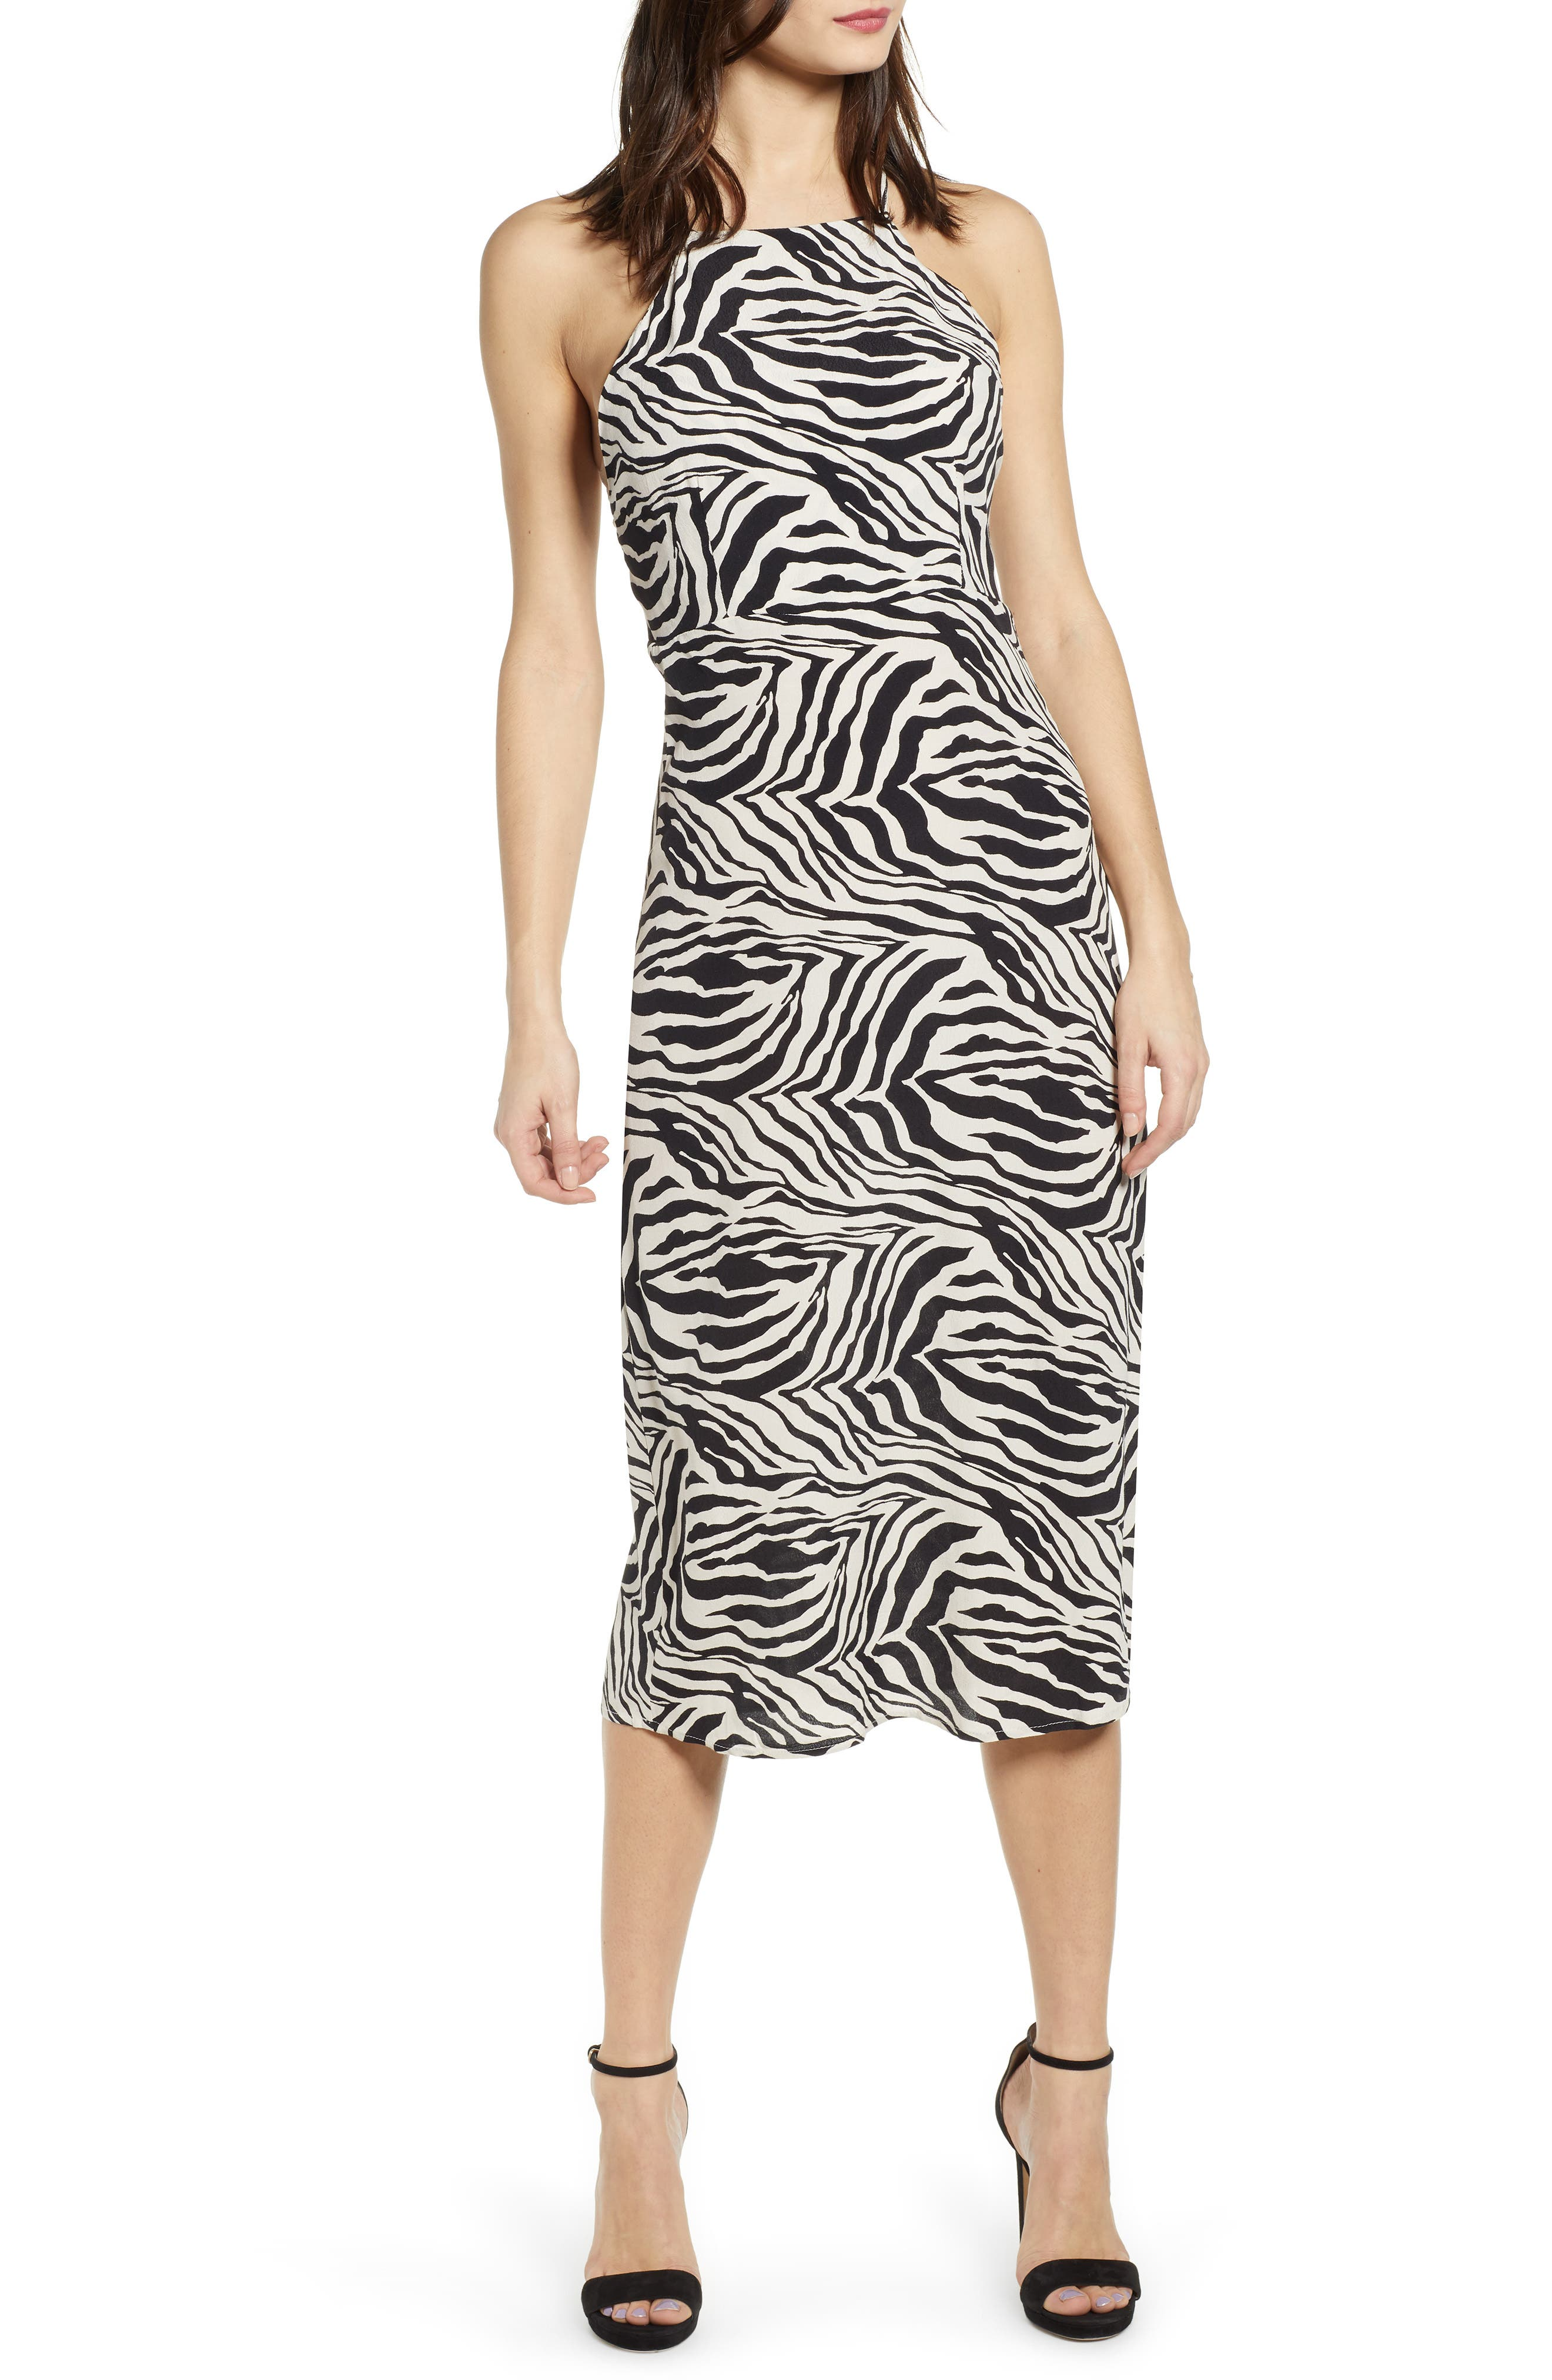 J.o.a. Zebra Print Halter Neck Midi Dress, Black